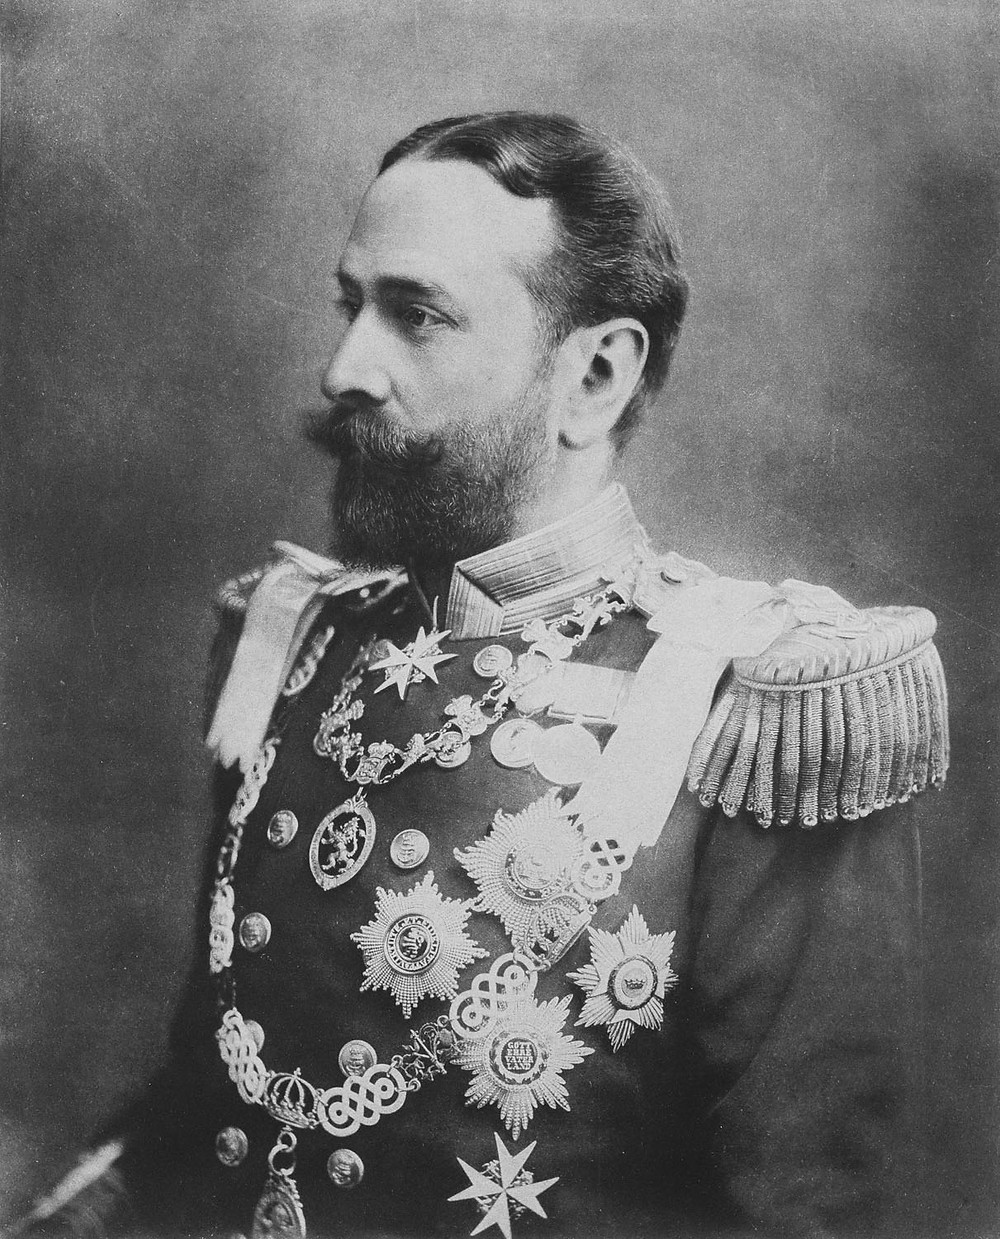 Prince Louis of Battenberg, Admiral of the British fleet, Royal Navy, he was Prince Philip's maternal grandfather